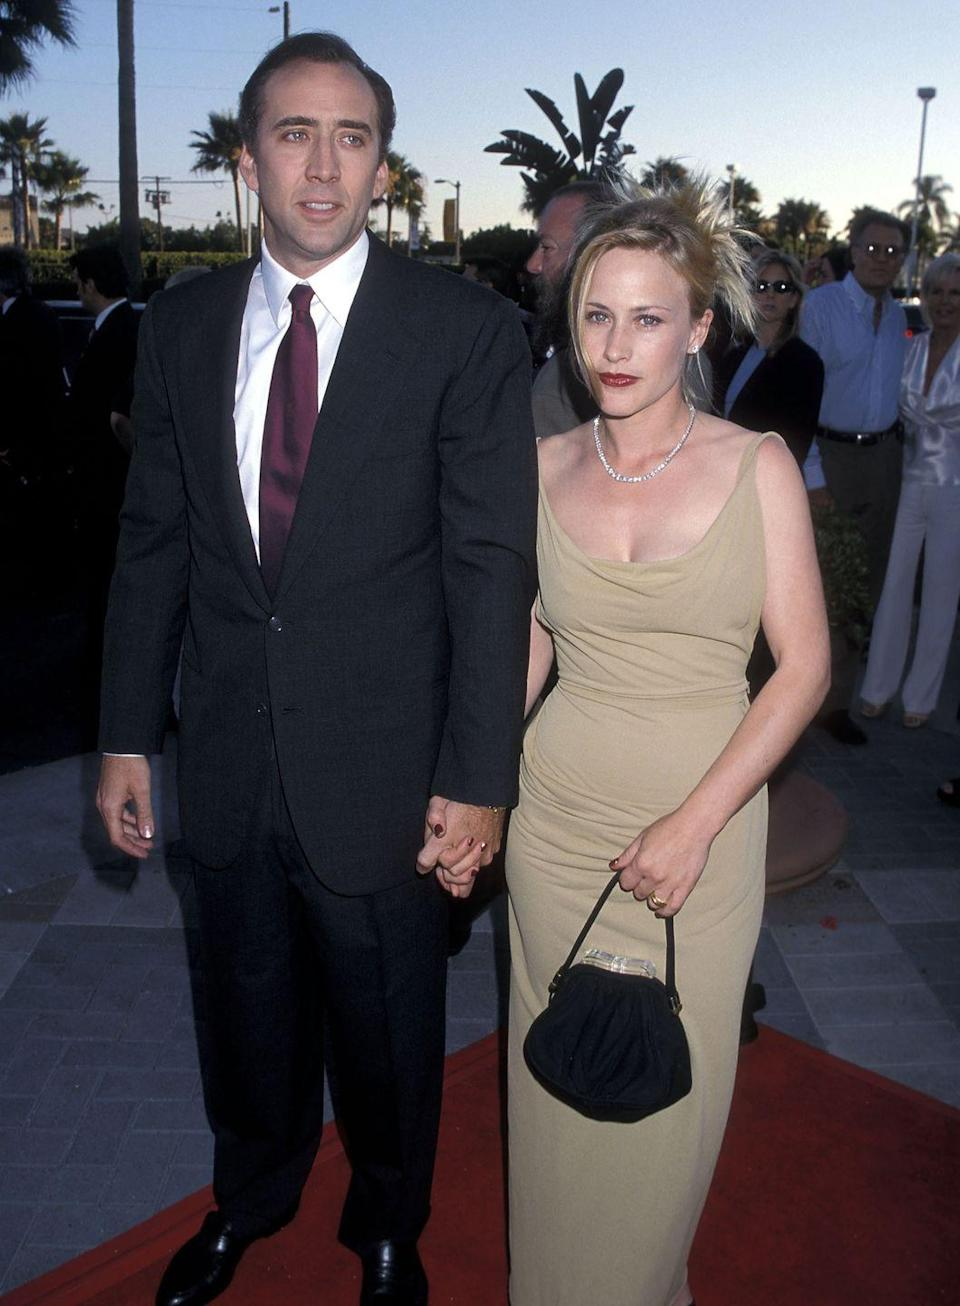 """<p>The action star said """"I do"""" to the Oscar-winning actress back in 1995, following a strange courtship that <a href=""""https://www.independent.co.uk/news/people/profiles/the-thursday-interview-patricia-arquette-624874.html"""" rel=""""nofollow noopener"""" target=""""_blank"""" data-ylk=""""slk:supposedly included"""" class=""""link rapid-noclick-resp"""">supposedly included</a> a proposal from Nicolas the same day they met. After five years, they announced their separation, and the divorce was finalized in 2001.</p>"""